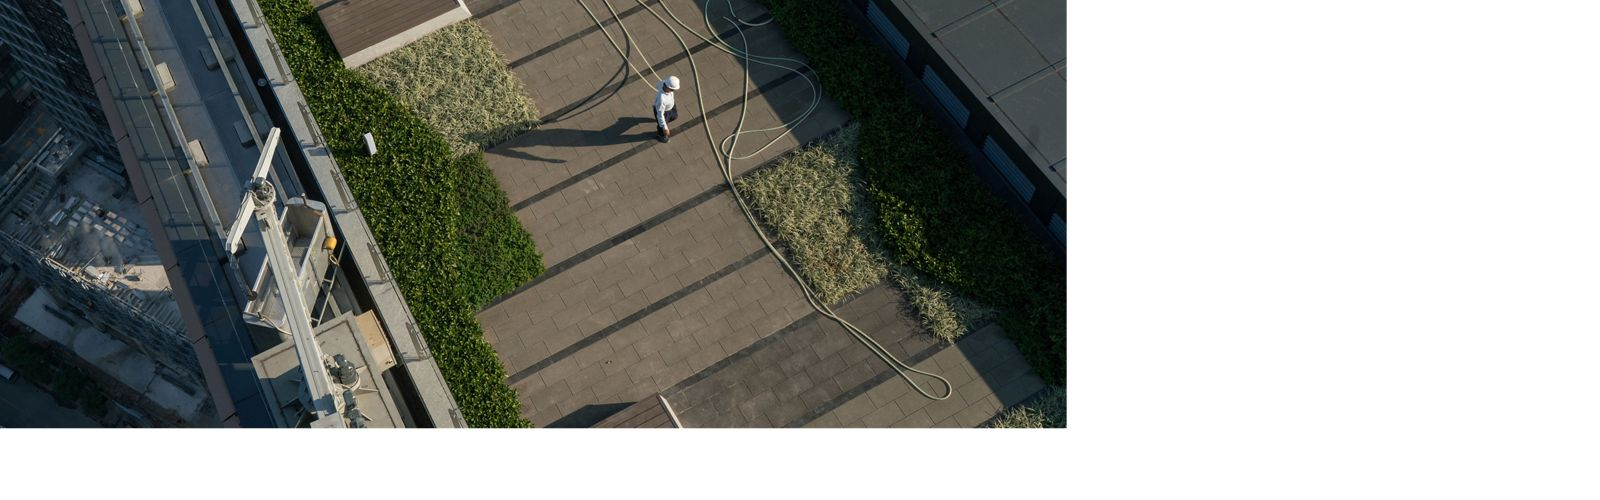 An employee waters the gardens on the rooftop of the Tencent Binhai towers in Shenzhen, China.